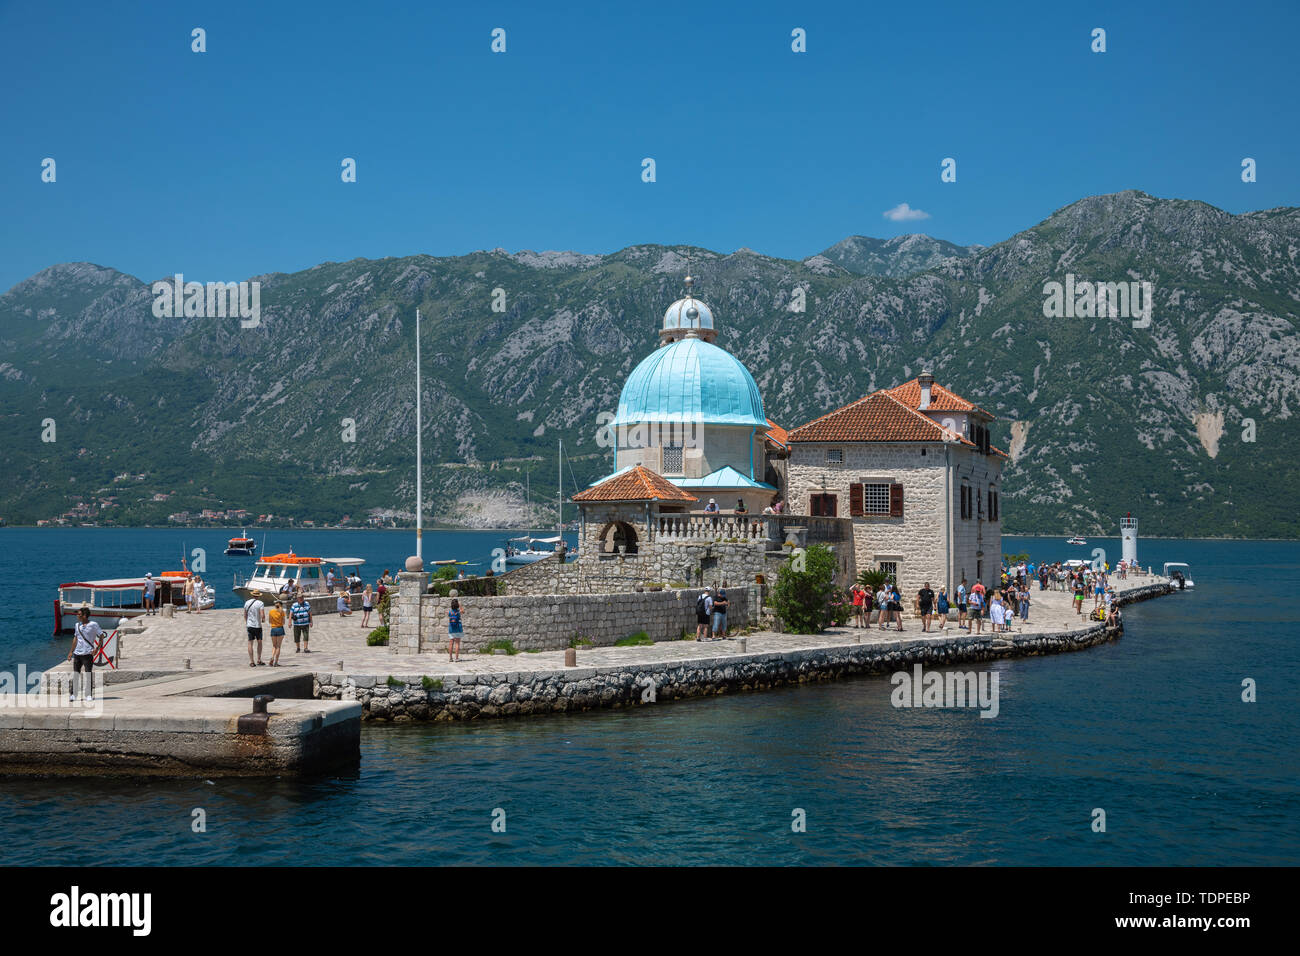 Perast, Montenegro - June 10. 2019: Church of Our Lady of Rocks on artificial island of Gospa od Skrpjela. - Stock Image